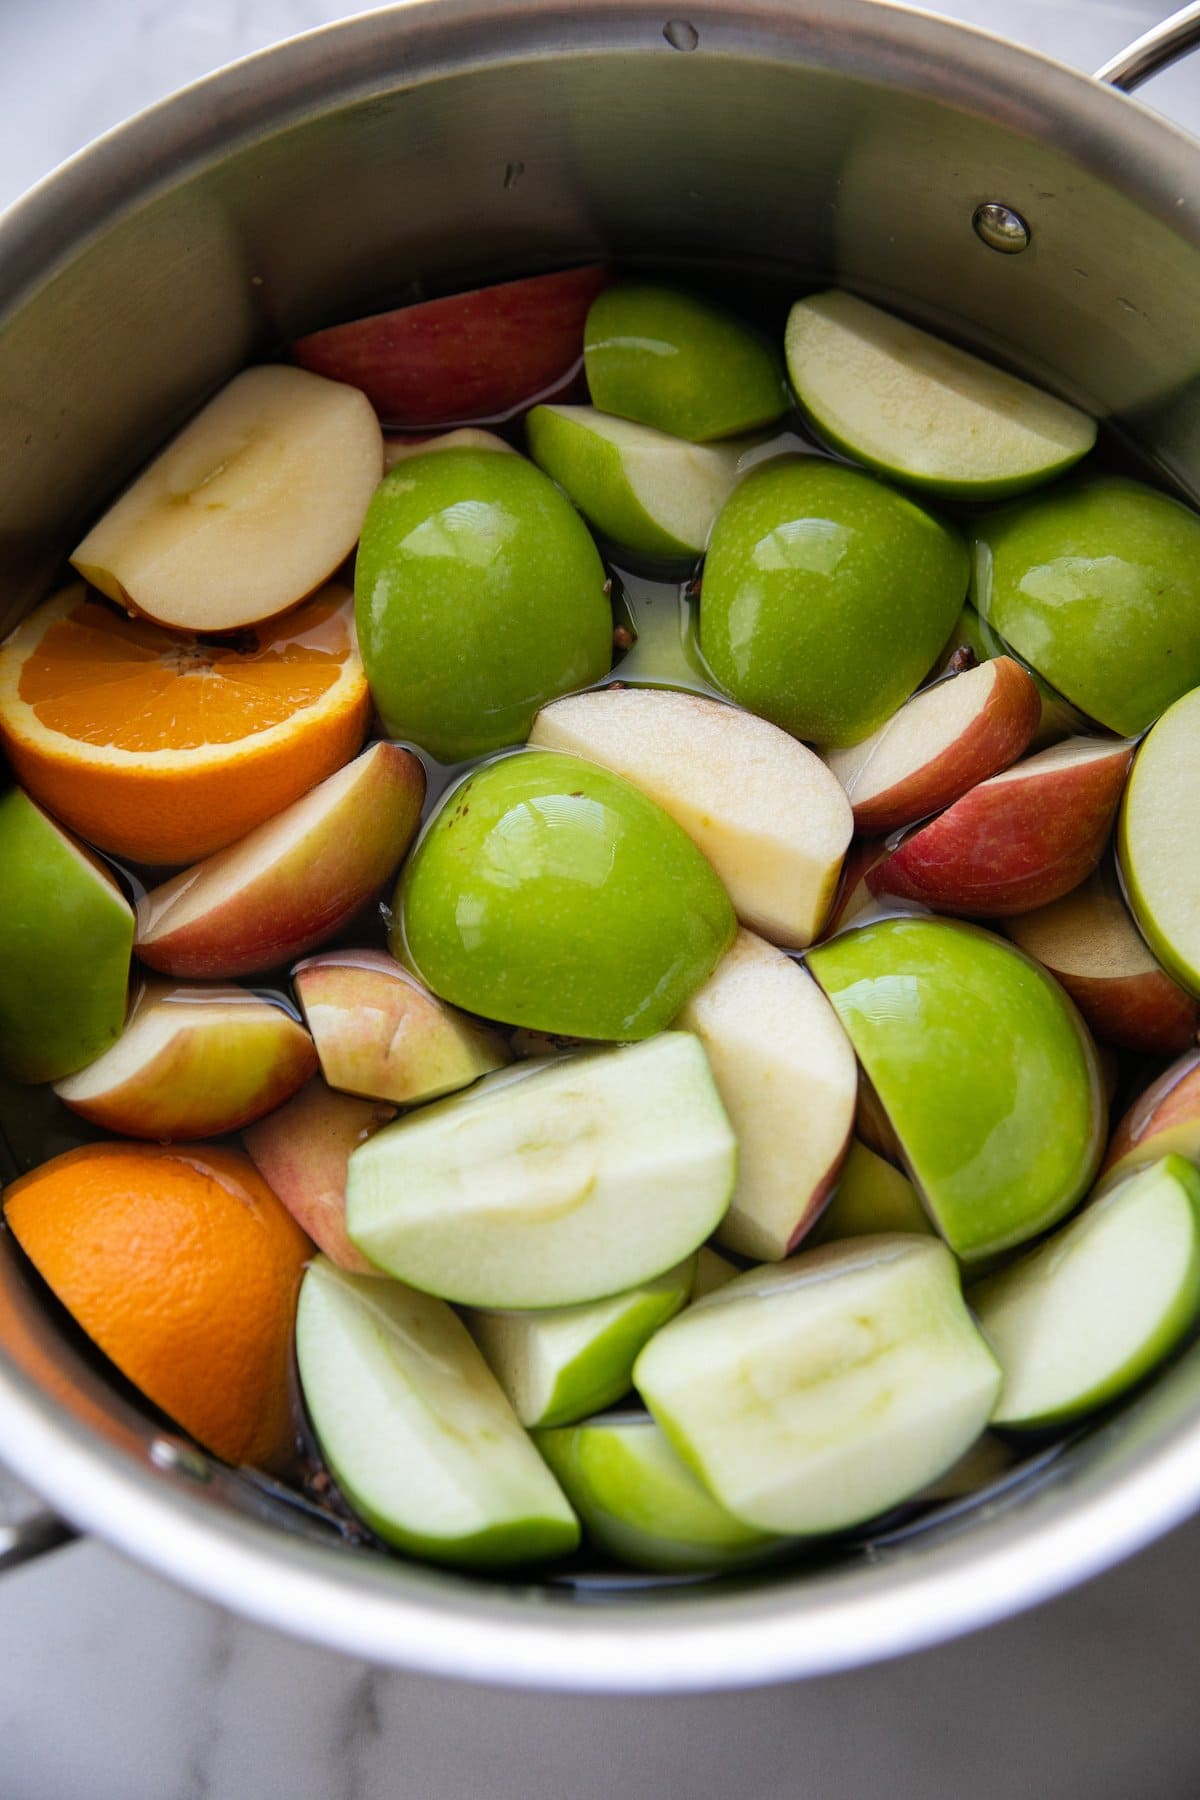 sliced apples and oranges in a pot filled with water